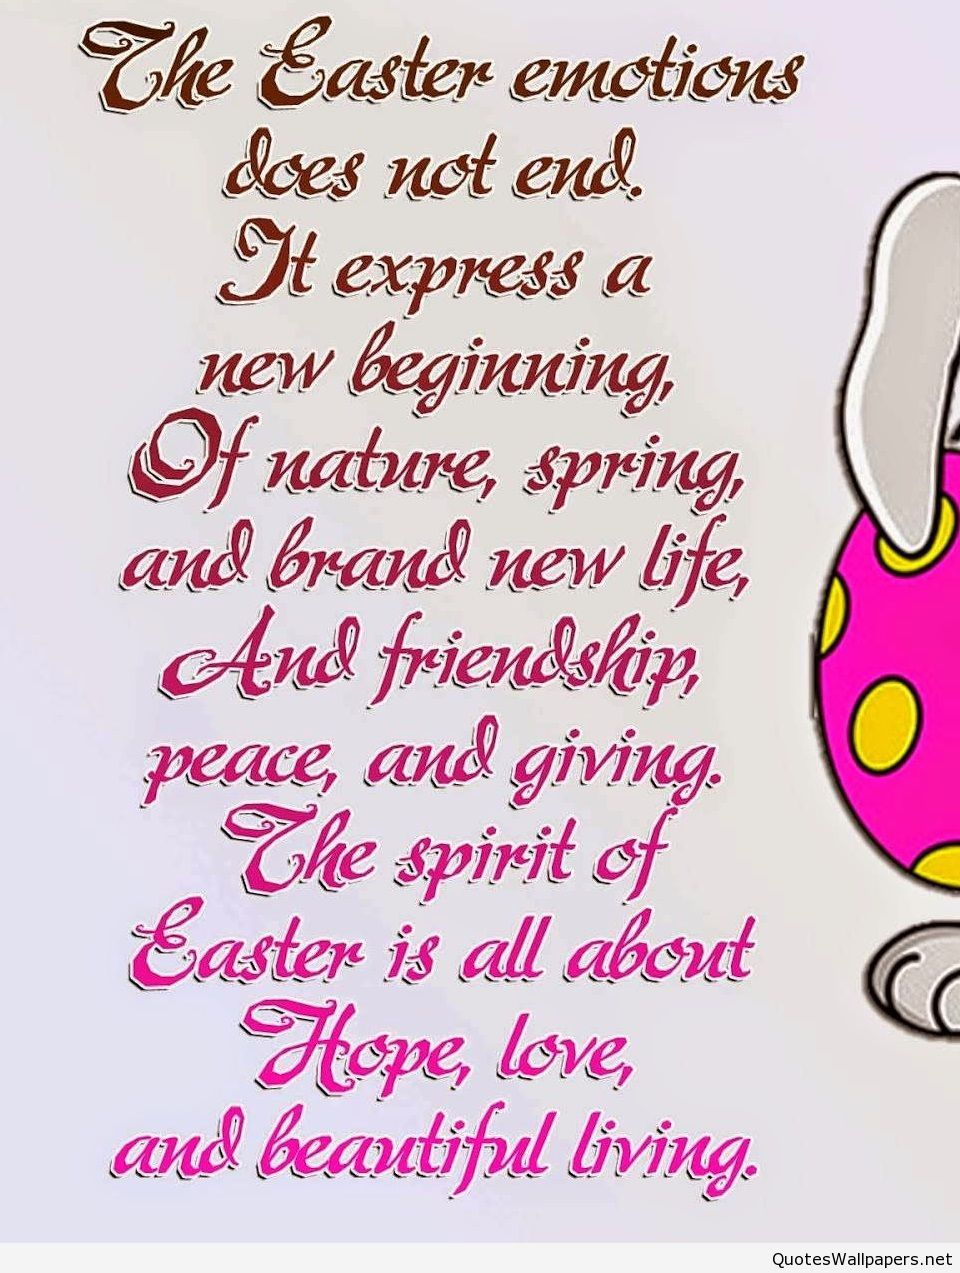 Easter New Beginnings Quote 2016 New Beginnings Quotes Wallpaper Quotes